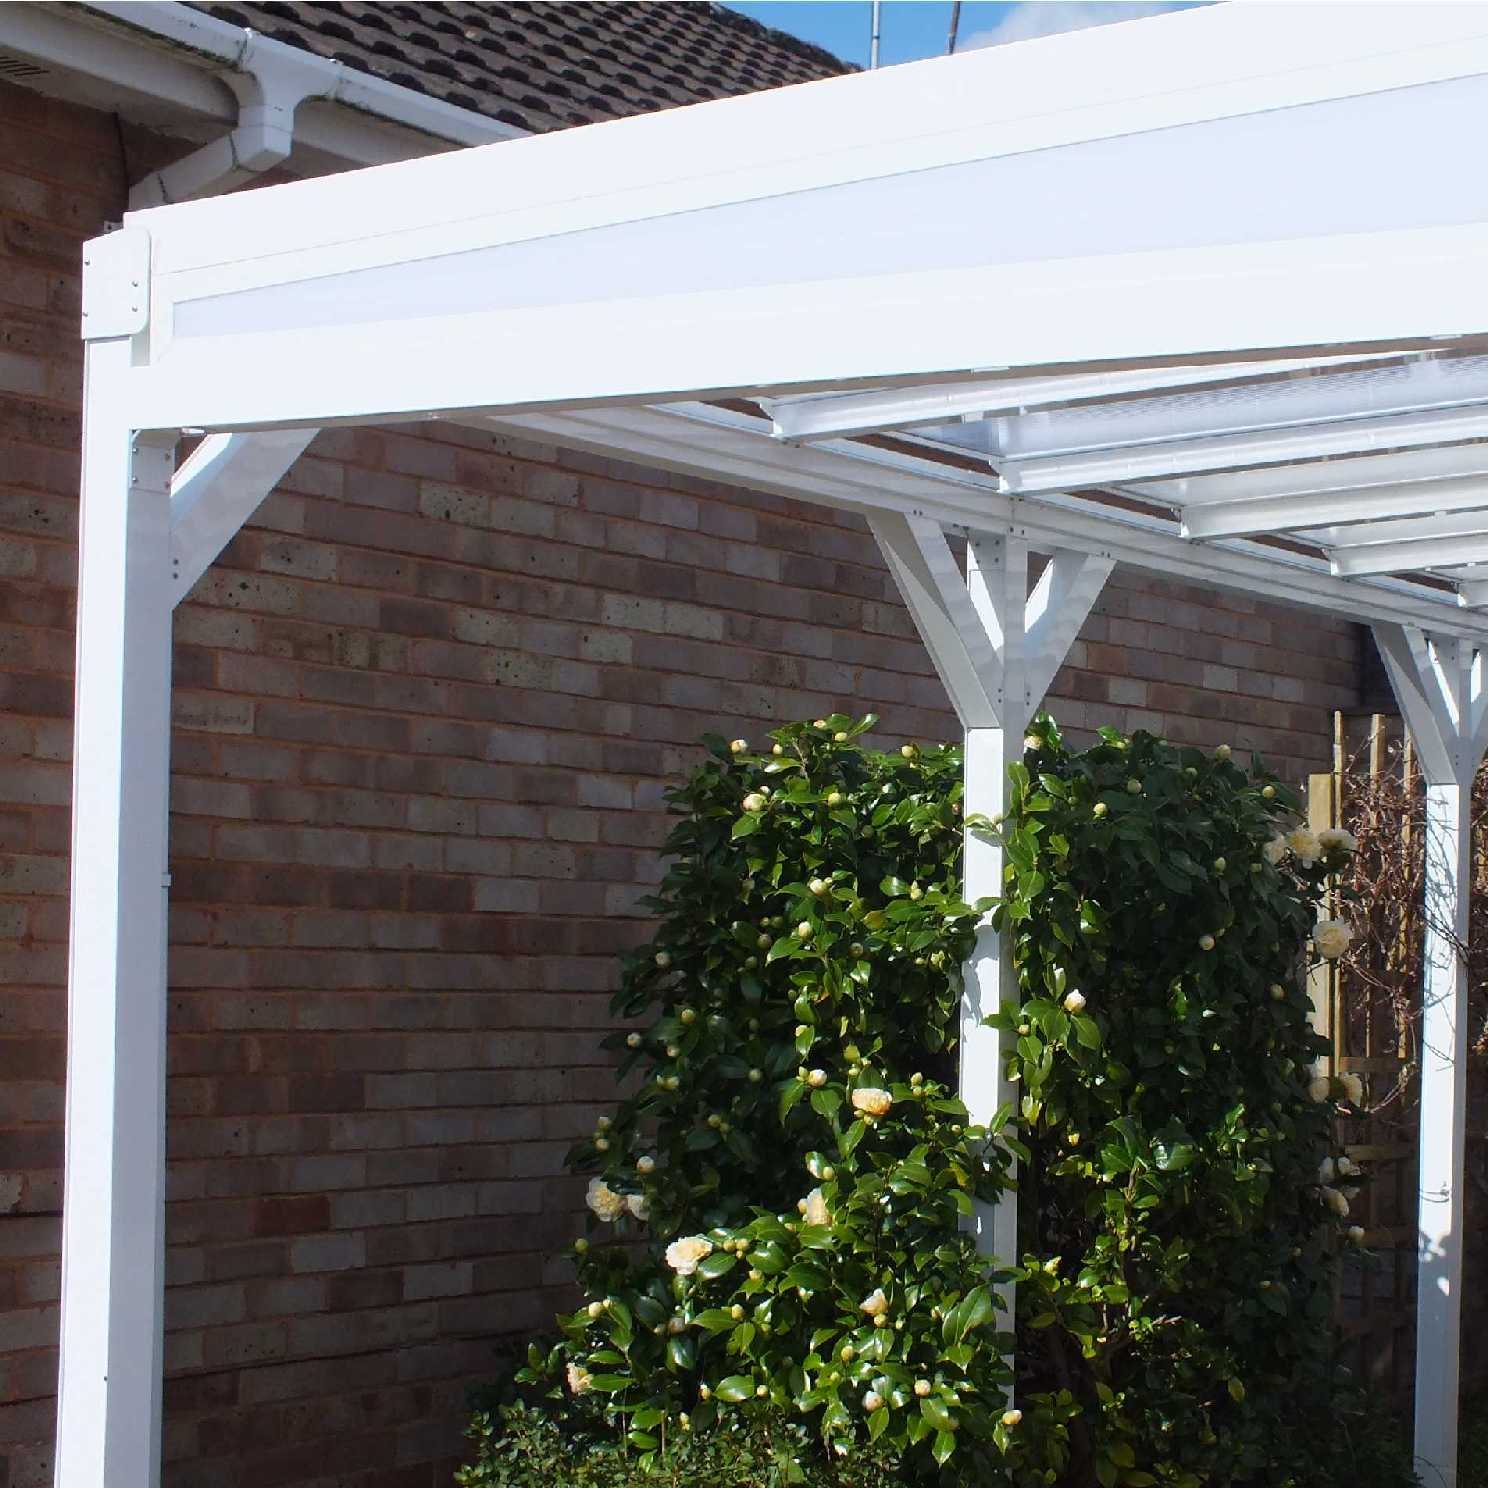 Omega Smart Lean-To Canopy with 16mm Polycarbonate Glazing - 7.4m (W) x 2.5m (P), (4) Supporting Posts from Omega Build